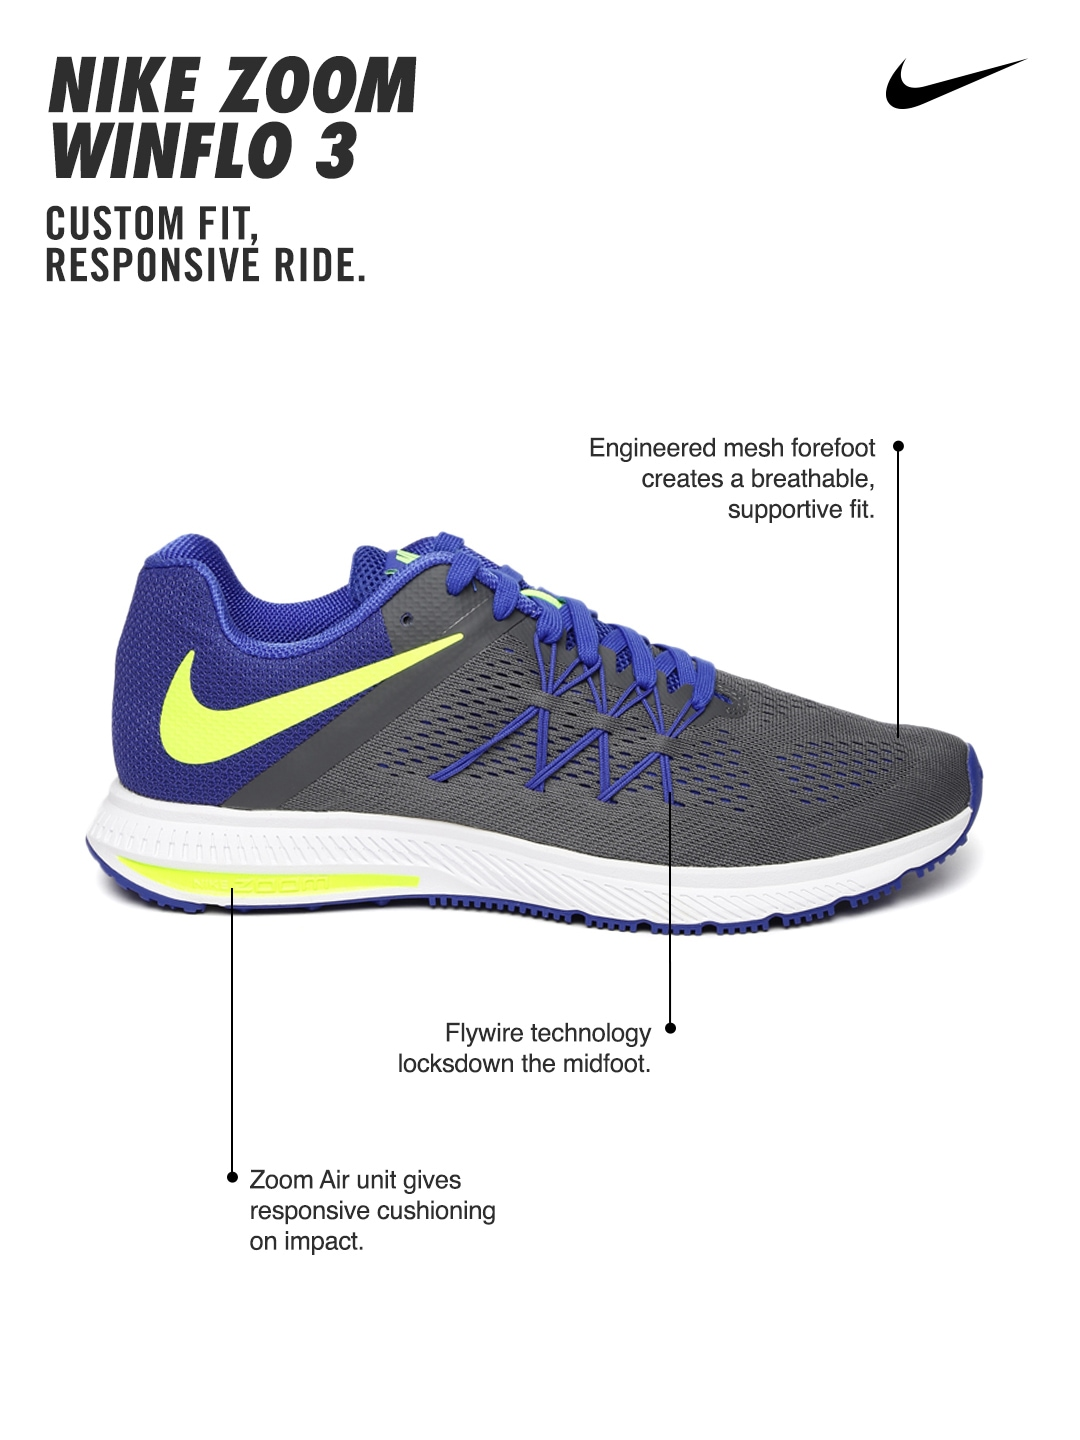 Nike Zoom Winflo 3 Review extreme-hosting.co.uk c43791355d49